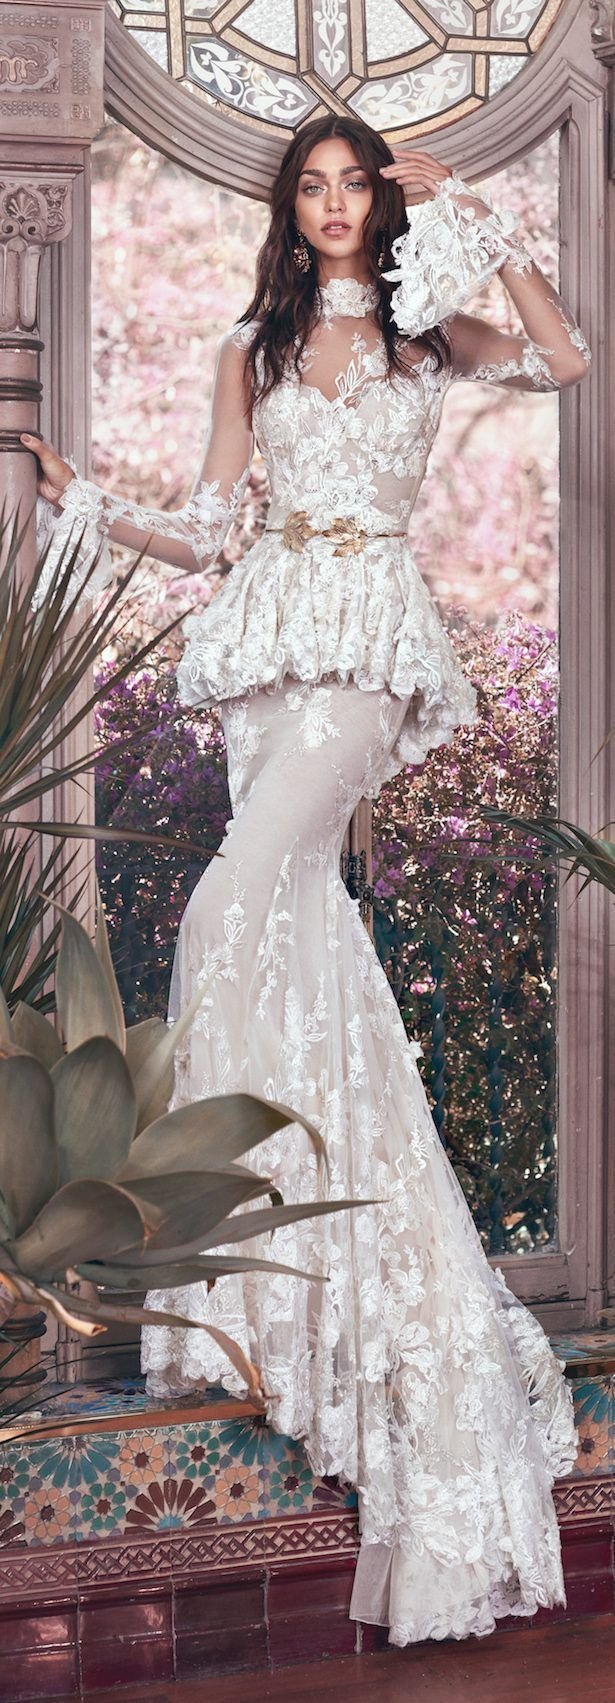 Galia lahav wedding dress collection victorian affinity tesla